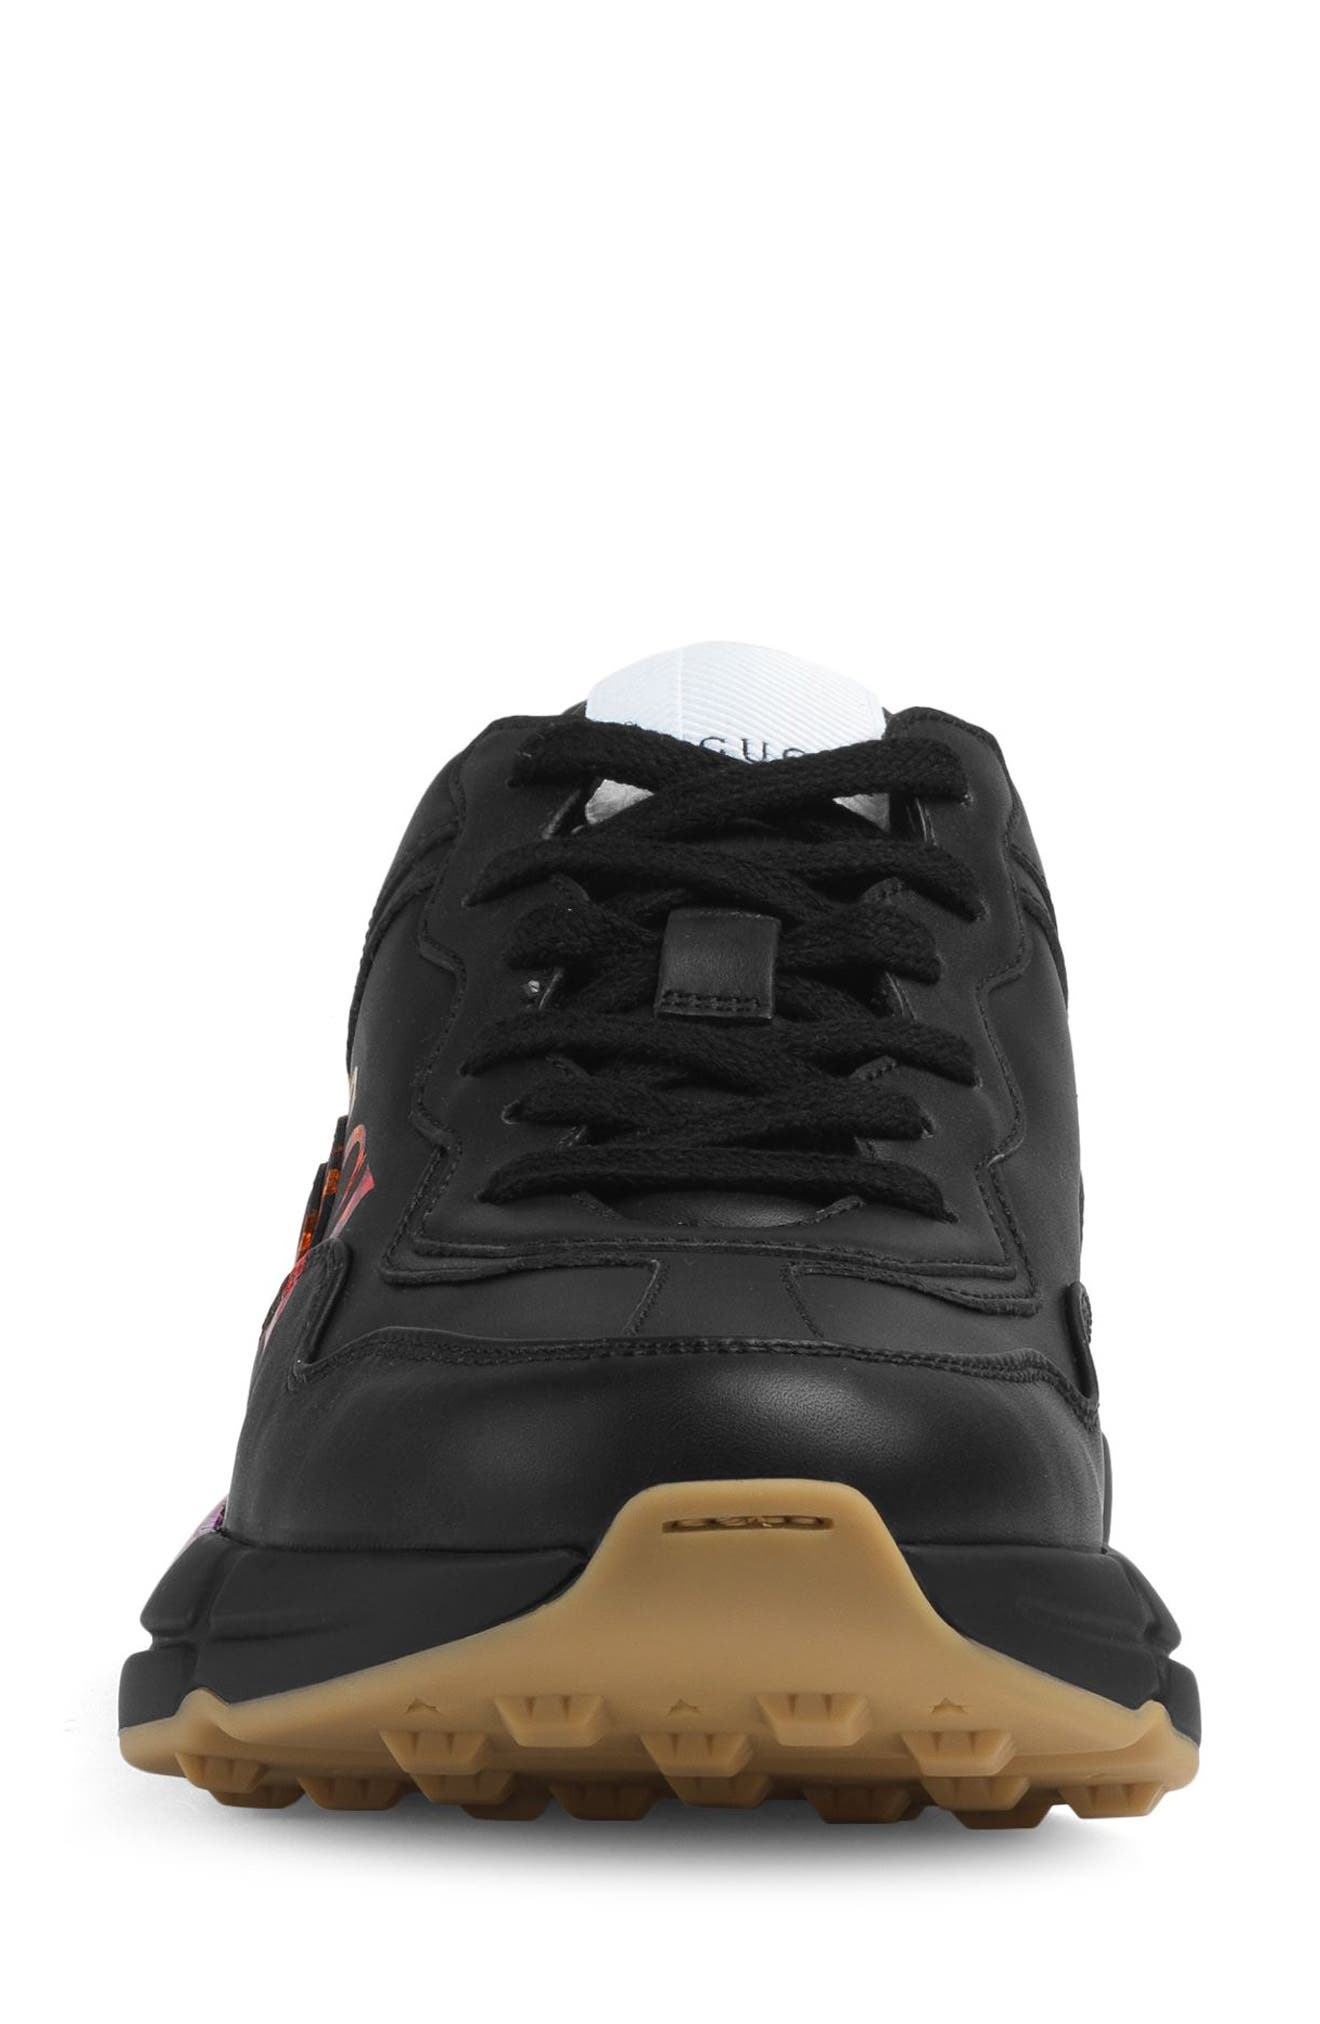 Rhyton Rainbow Sneaker,                             Alternate thumbnail 3, color,                             BLACK/ RAINBOW